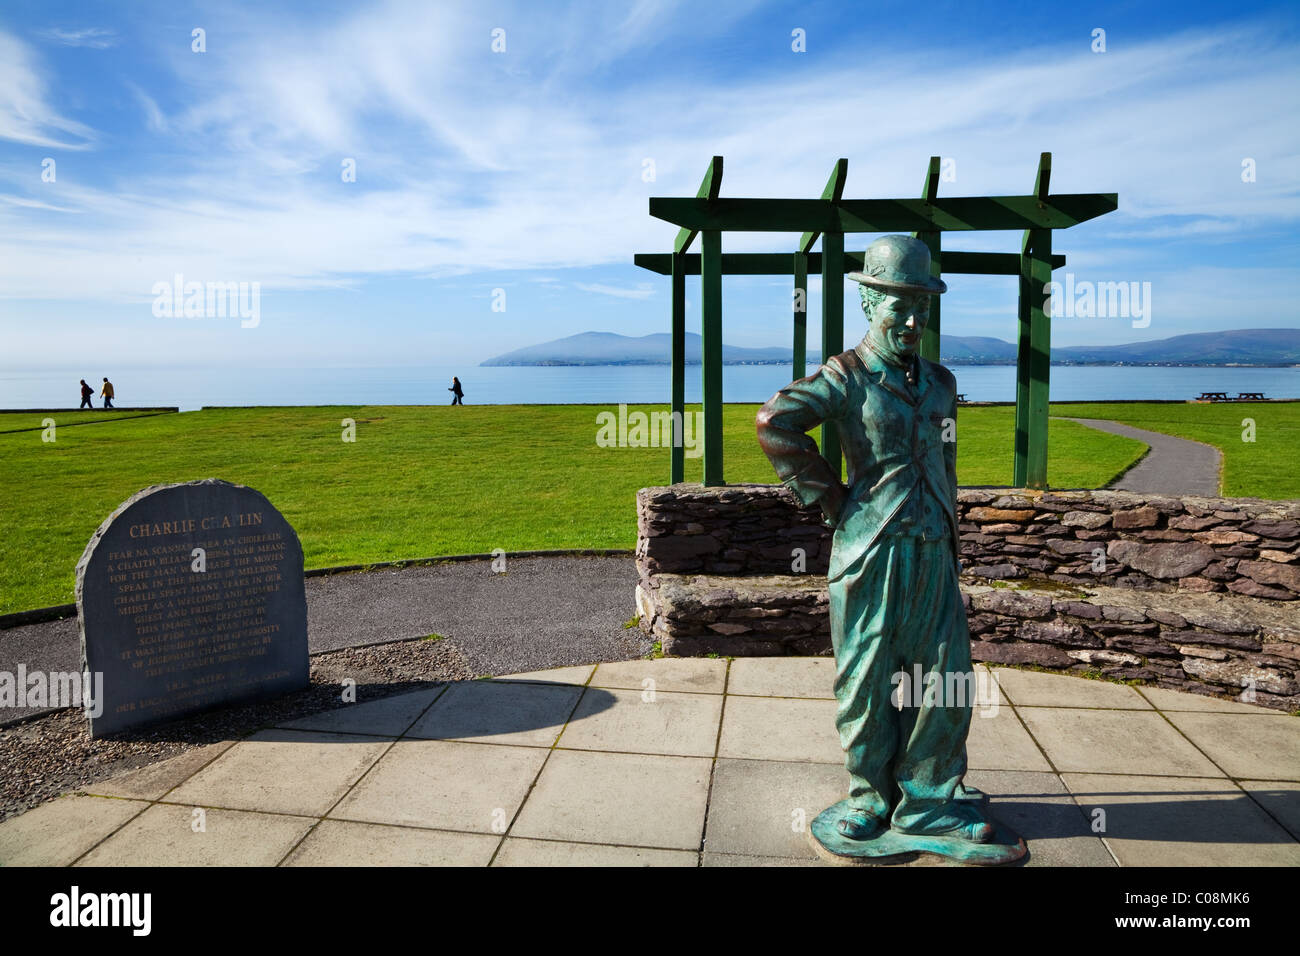 Sculpture by Alan Ryan Hall of Charlie Chaplin, a frequent visitor to Waterville, On the Ring of Kerry, County Kerry, - Stock Image